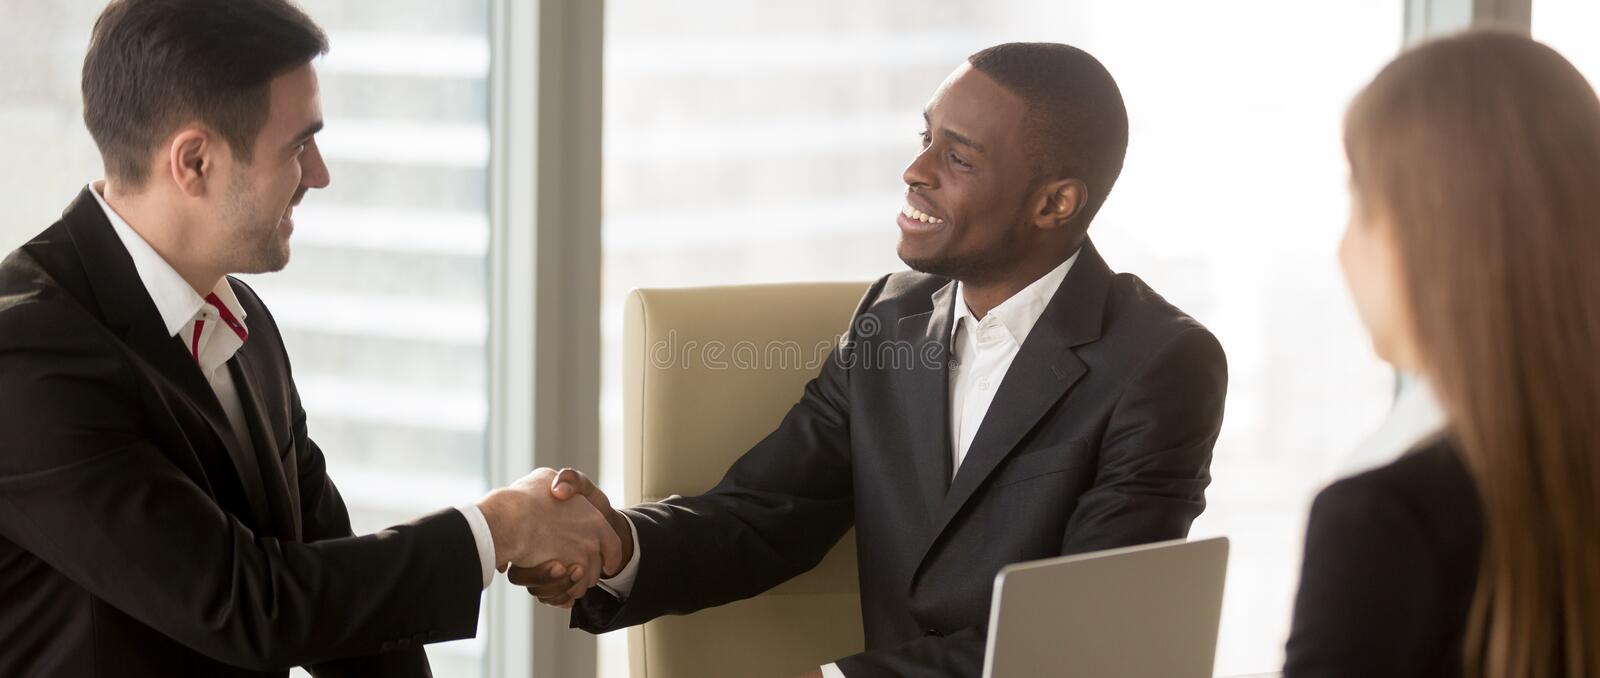 Horizontal image diverse people meets at office boardroom shaking hands royalty free stock image